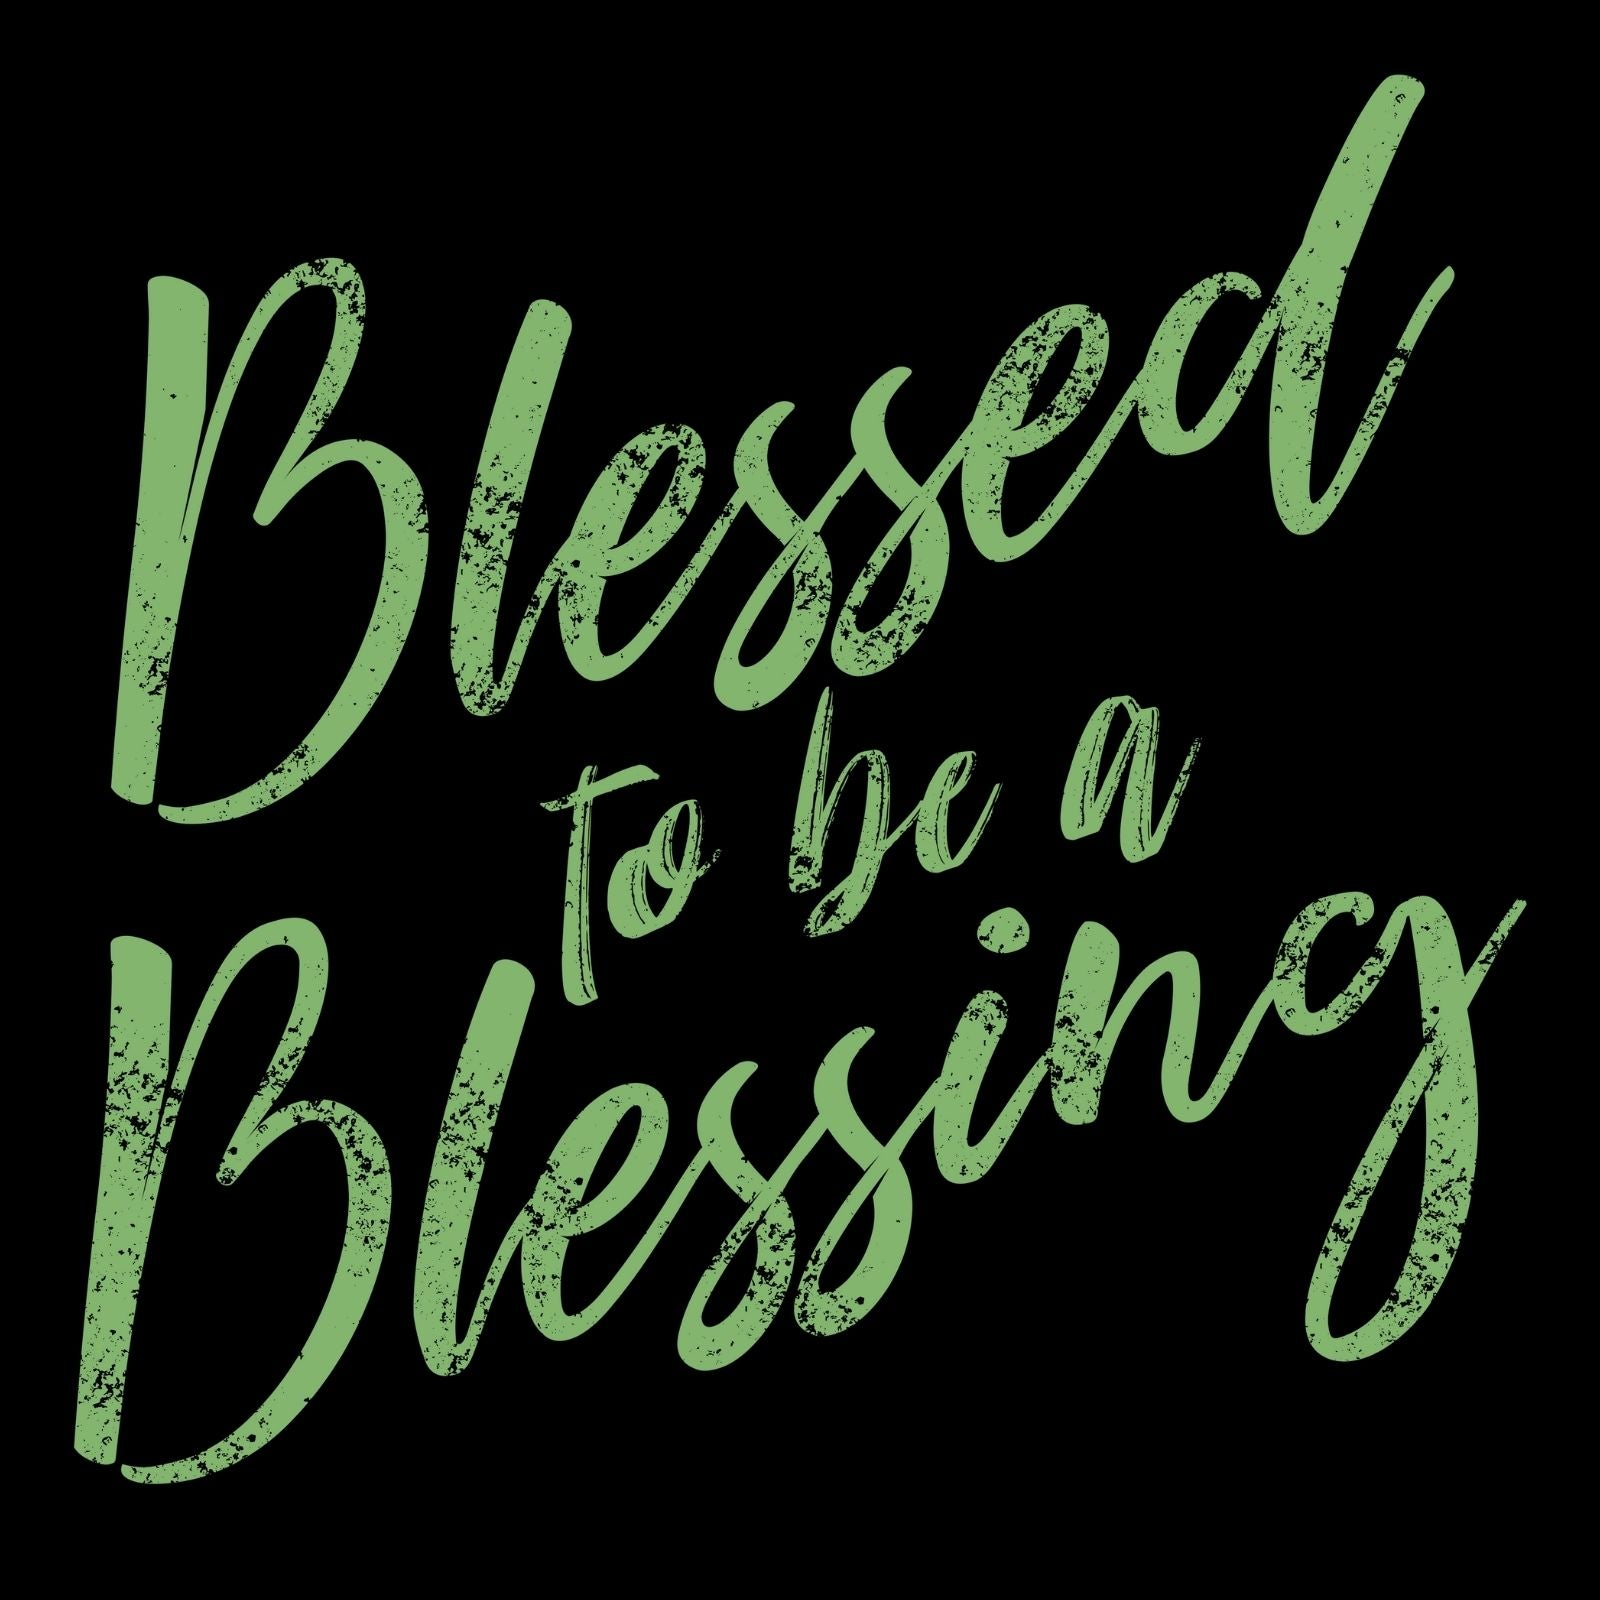 Blessed To Be A Blessing - Bastard Graphics